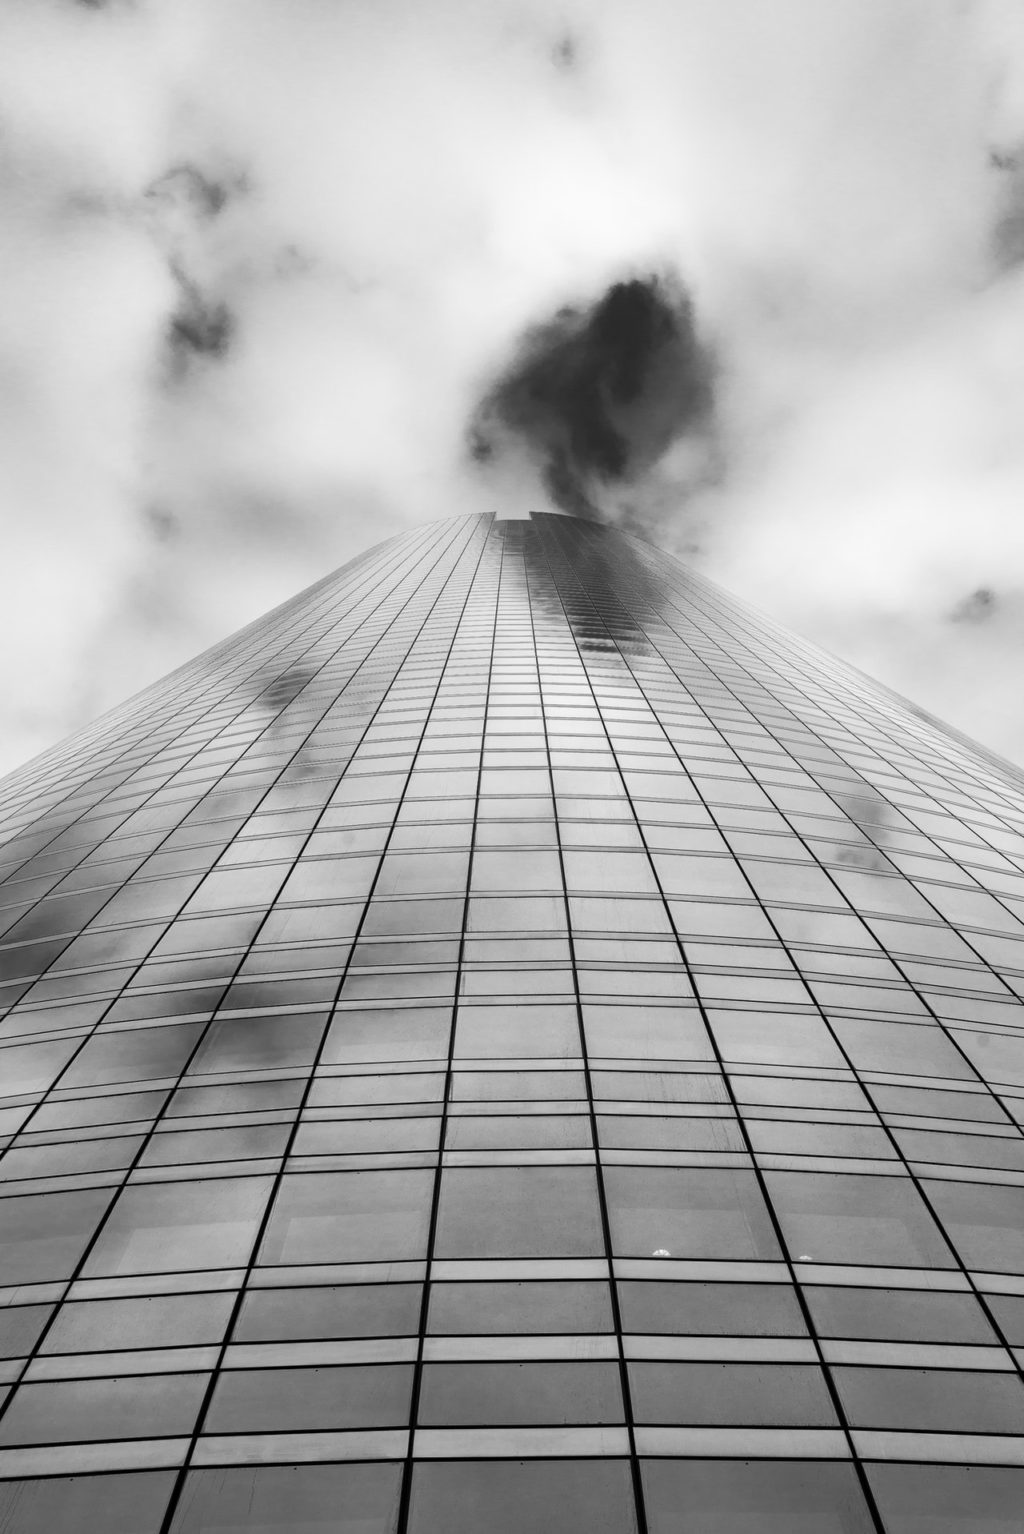 abstract architectural design architecture black and white